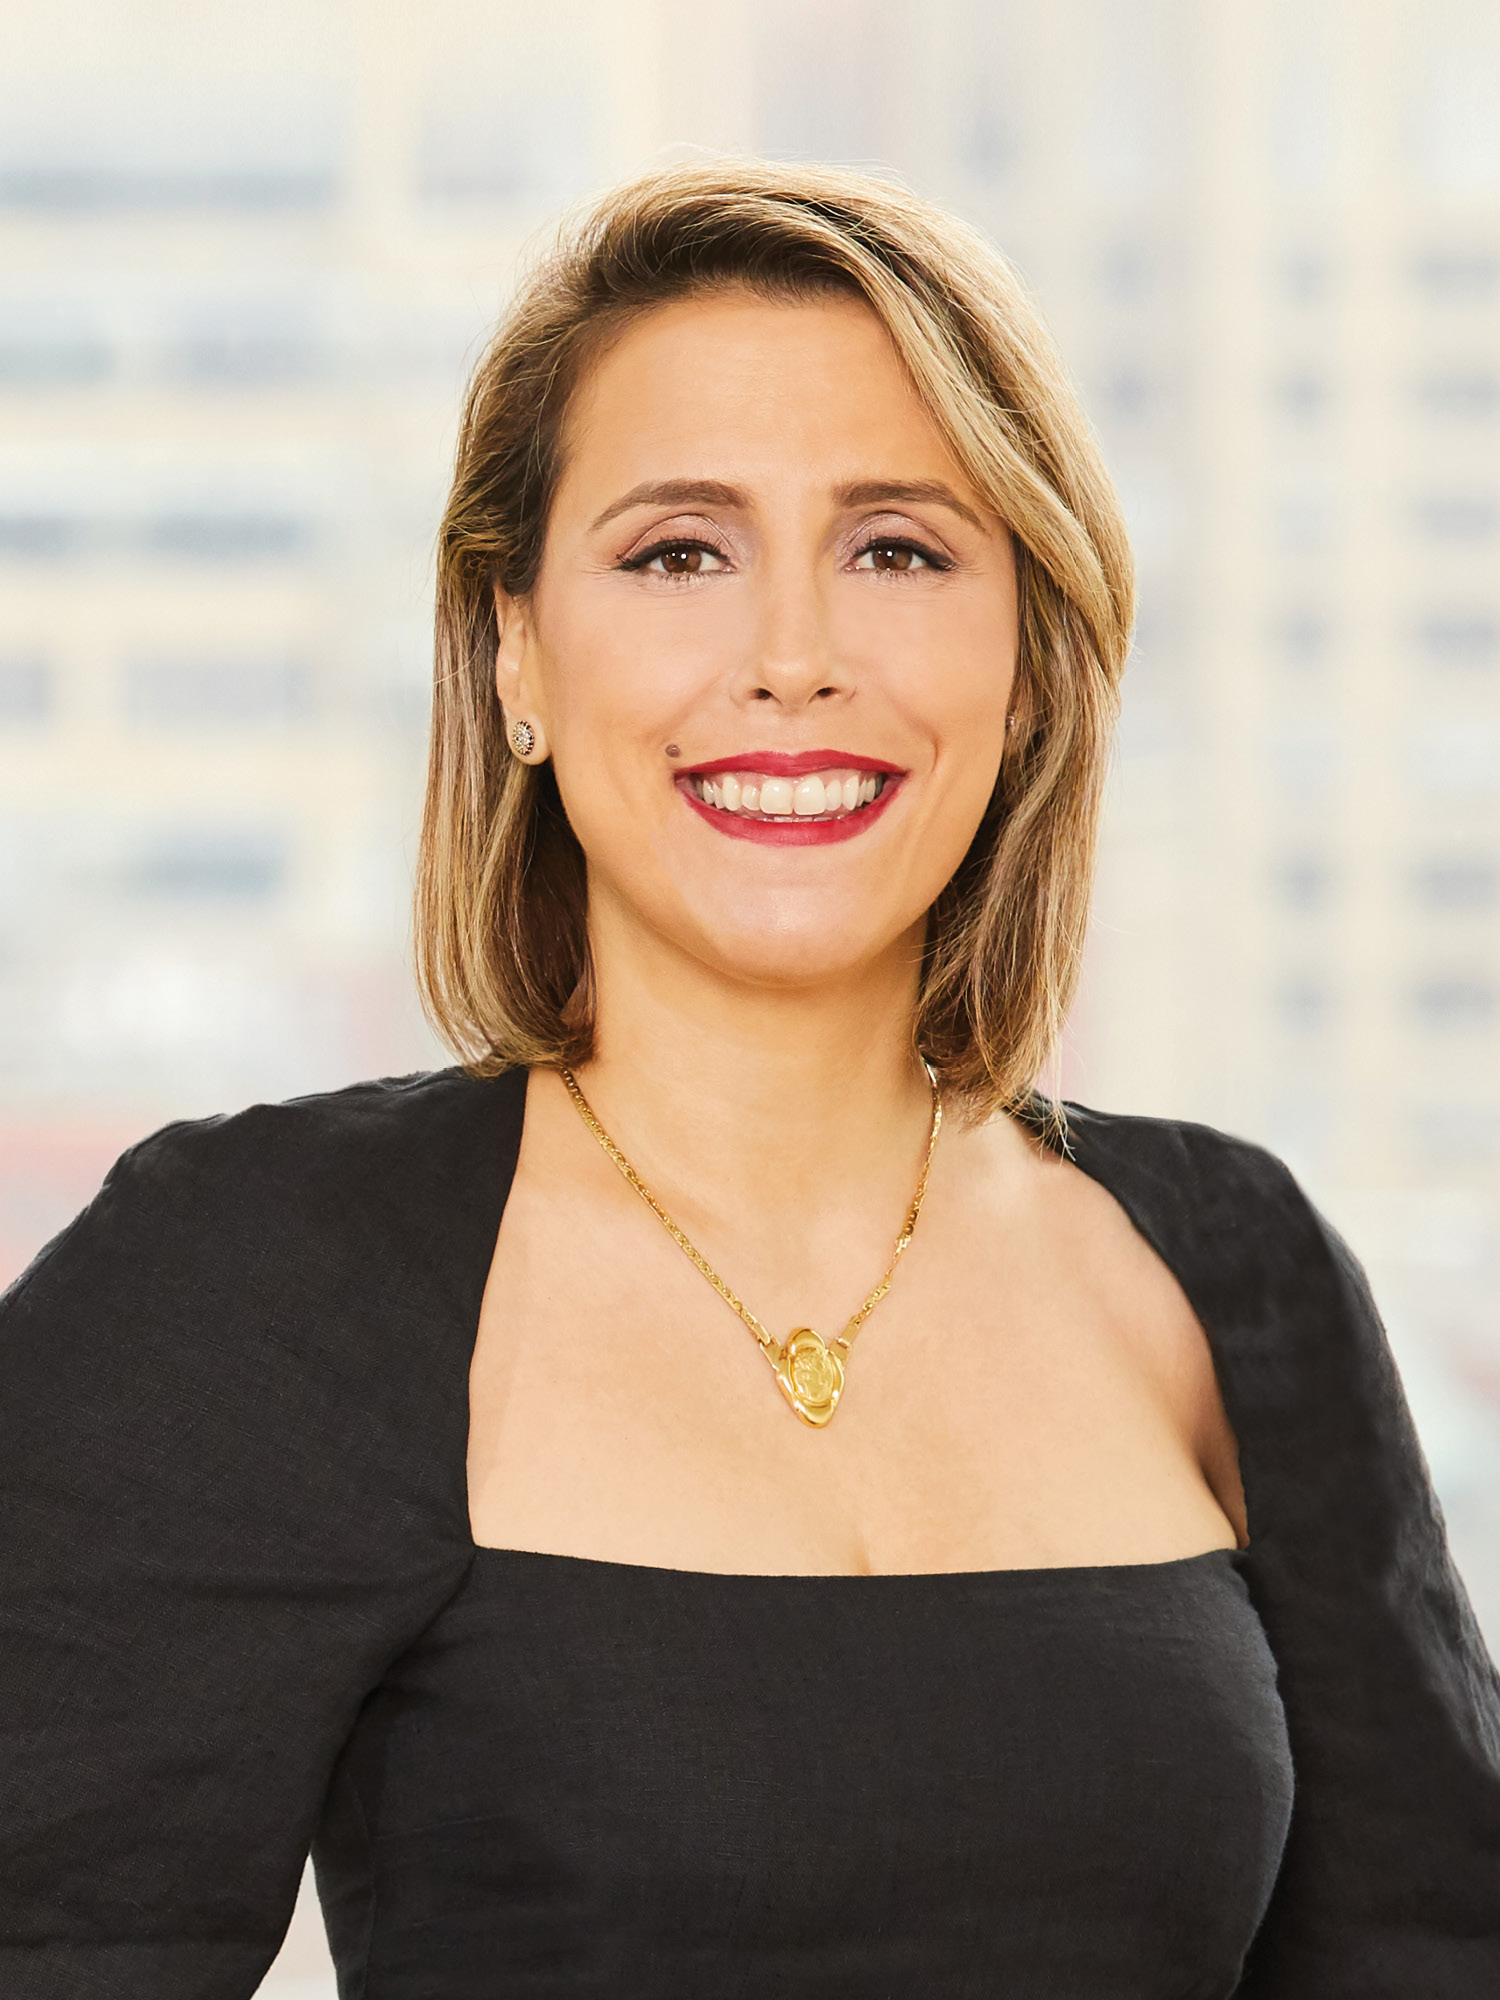 Tania Nasr, a top realtor in New York City for Corcoran, a real estate firm in East Side.